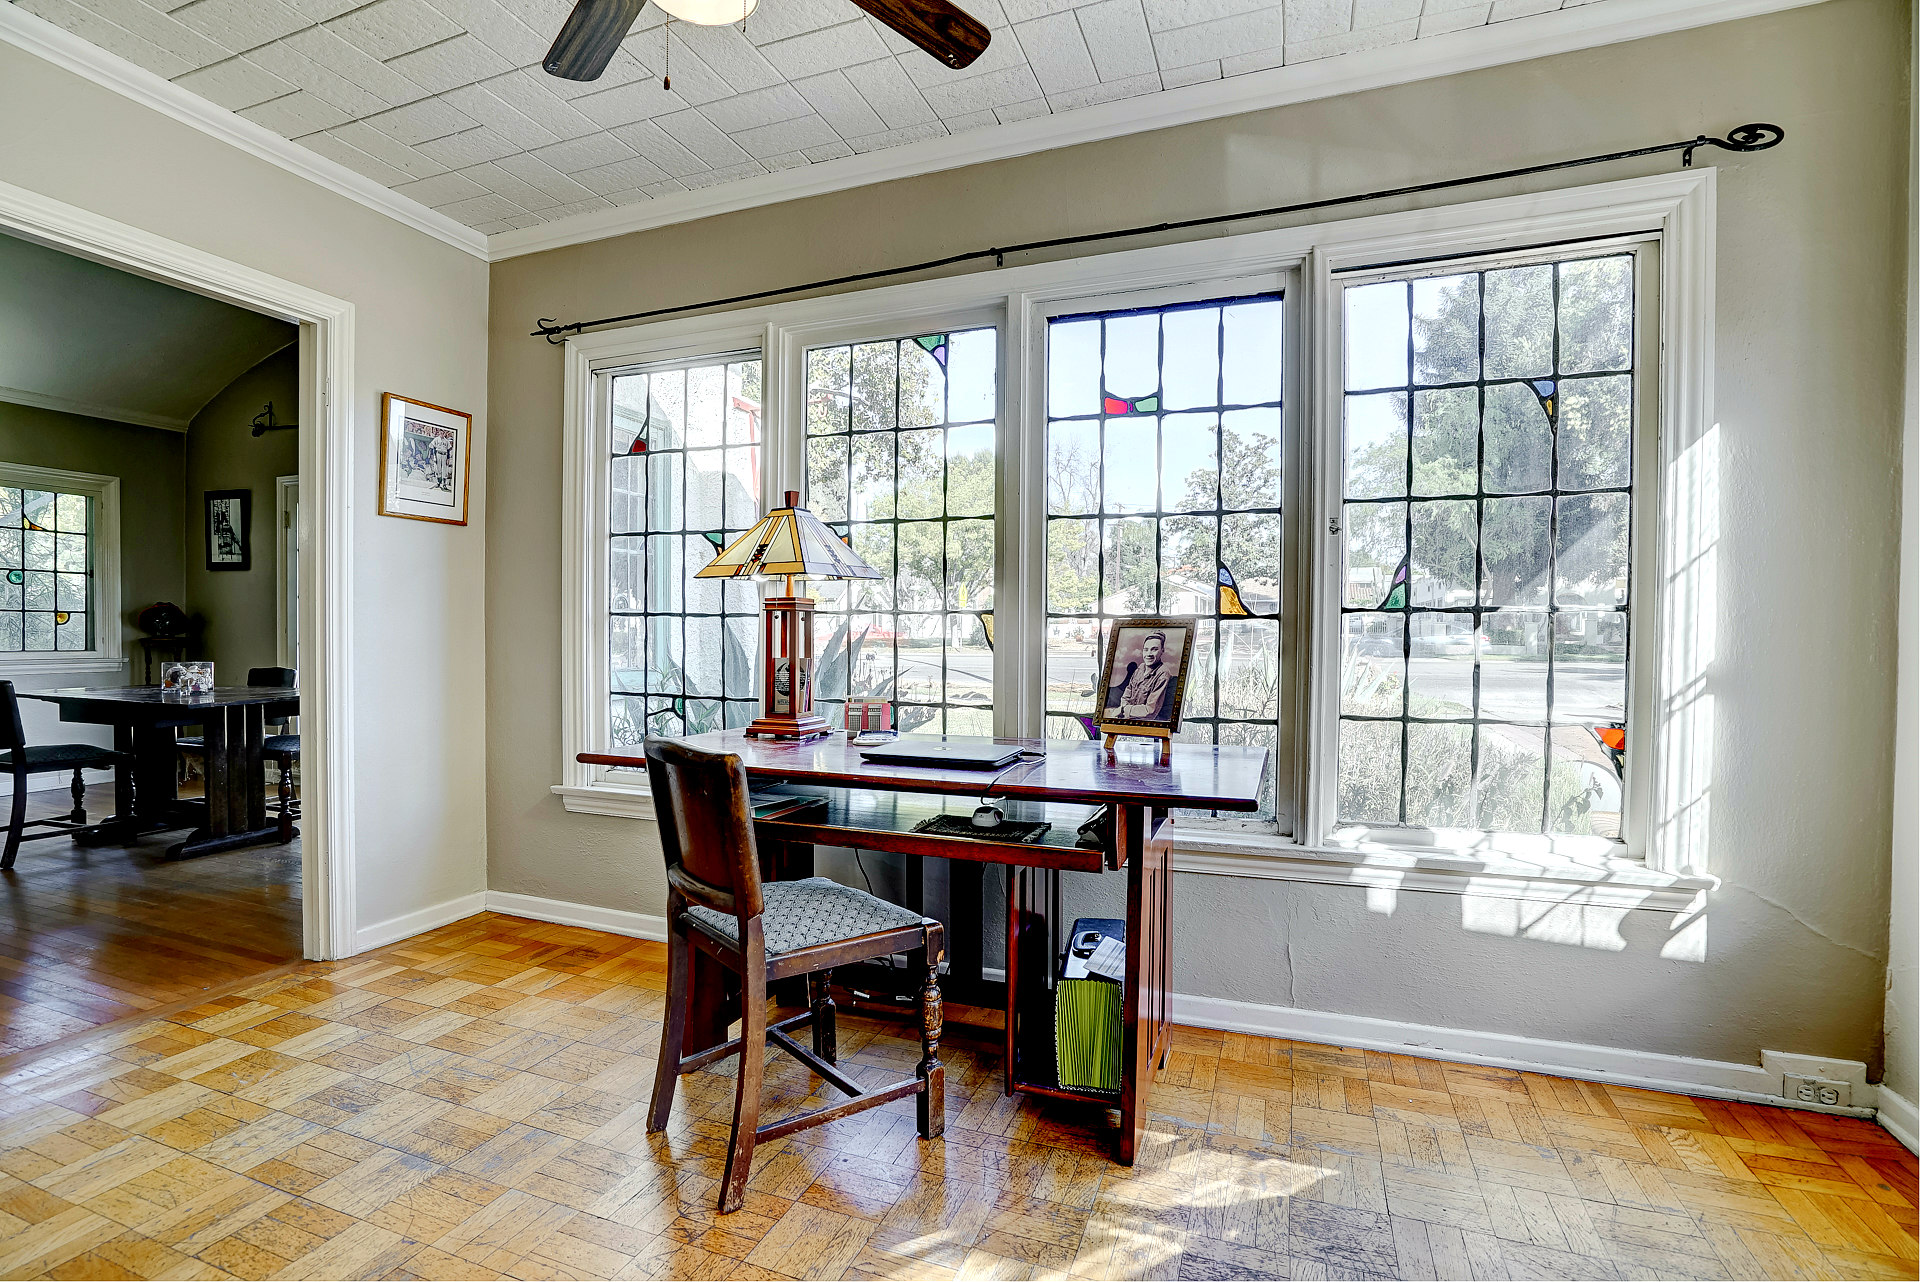 Front parlor or office area with original Jekel themed stained glass window accents.